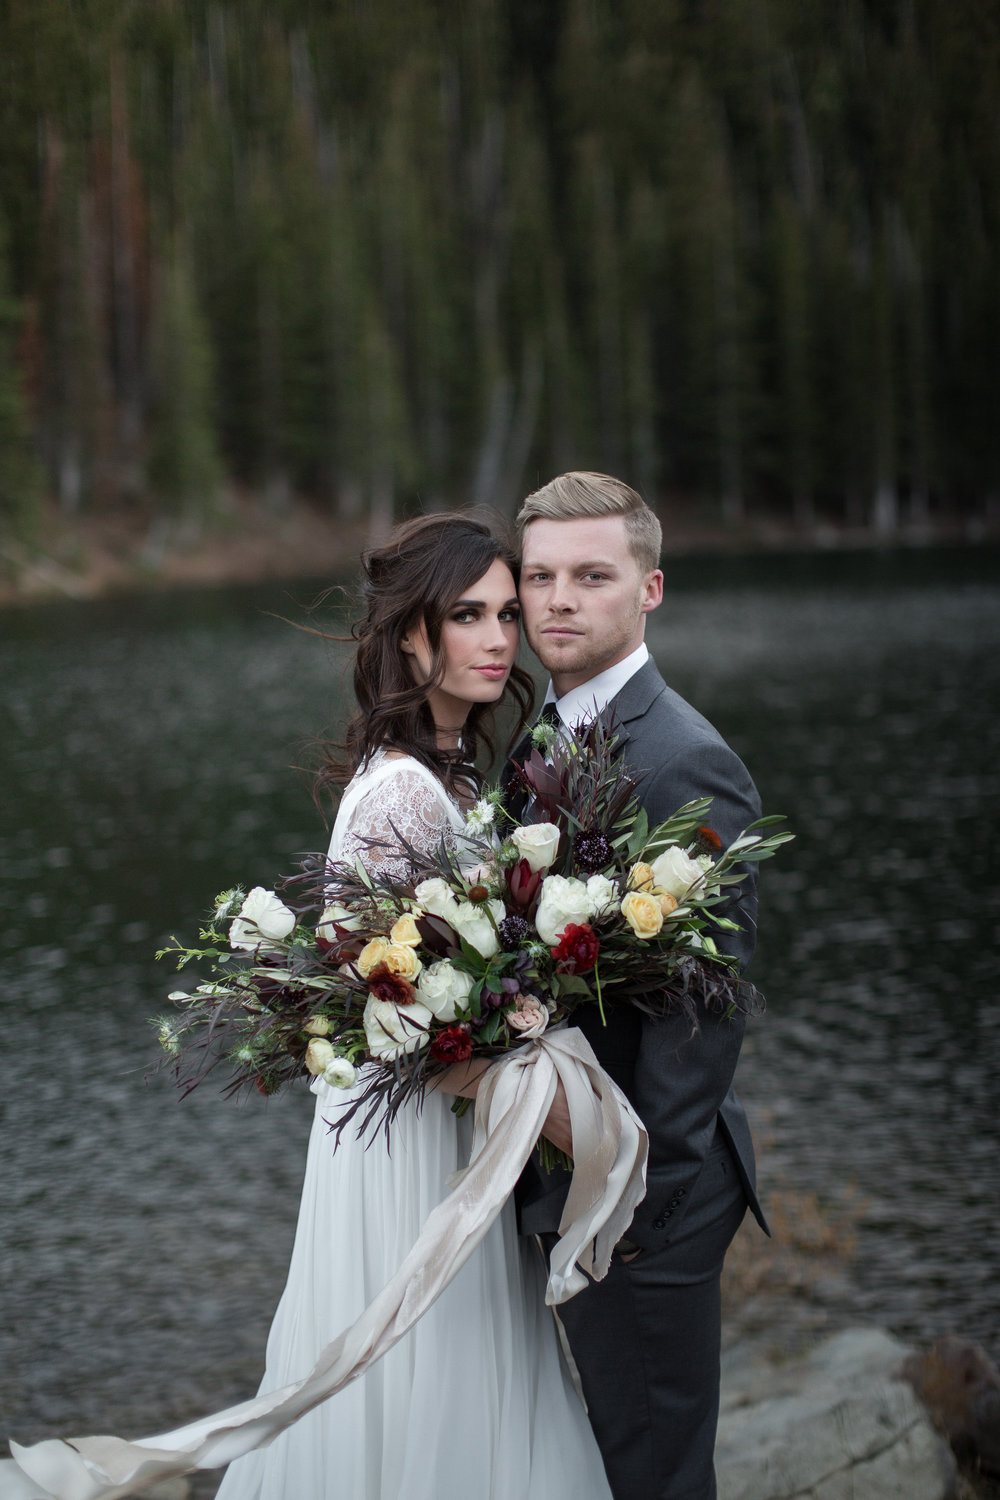 UtahValleyBrideShootTR2016 (14 of 110).jpg